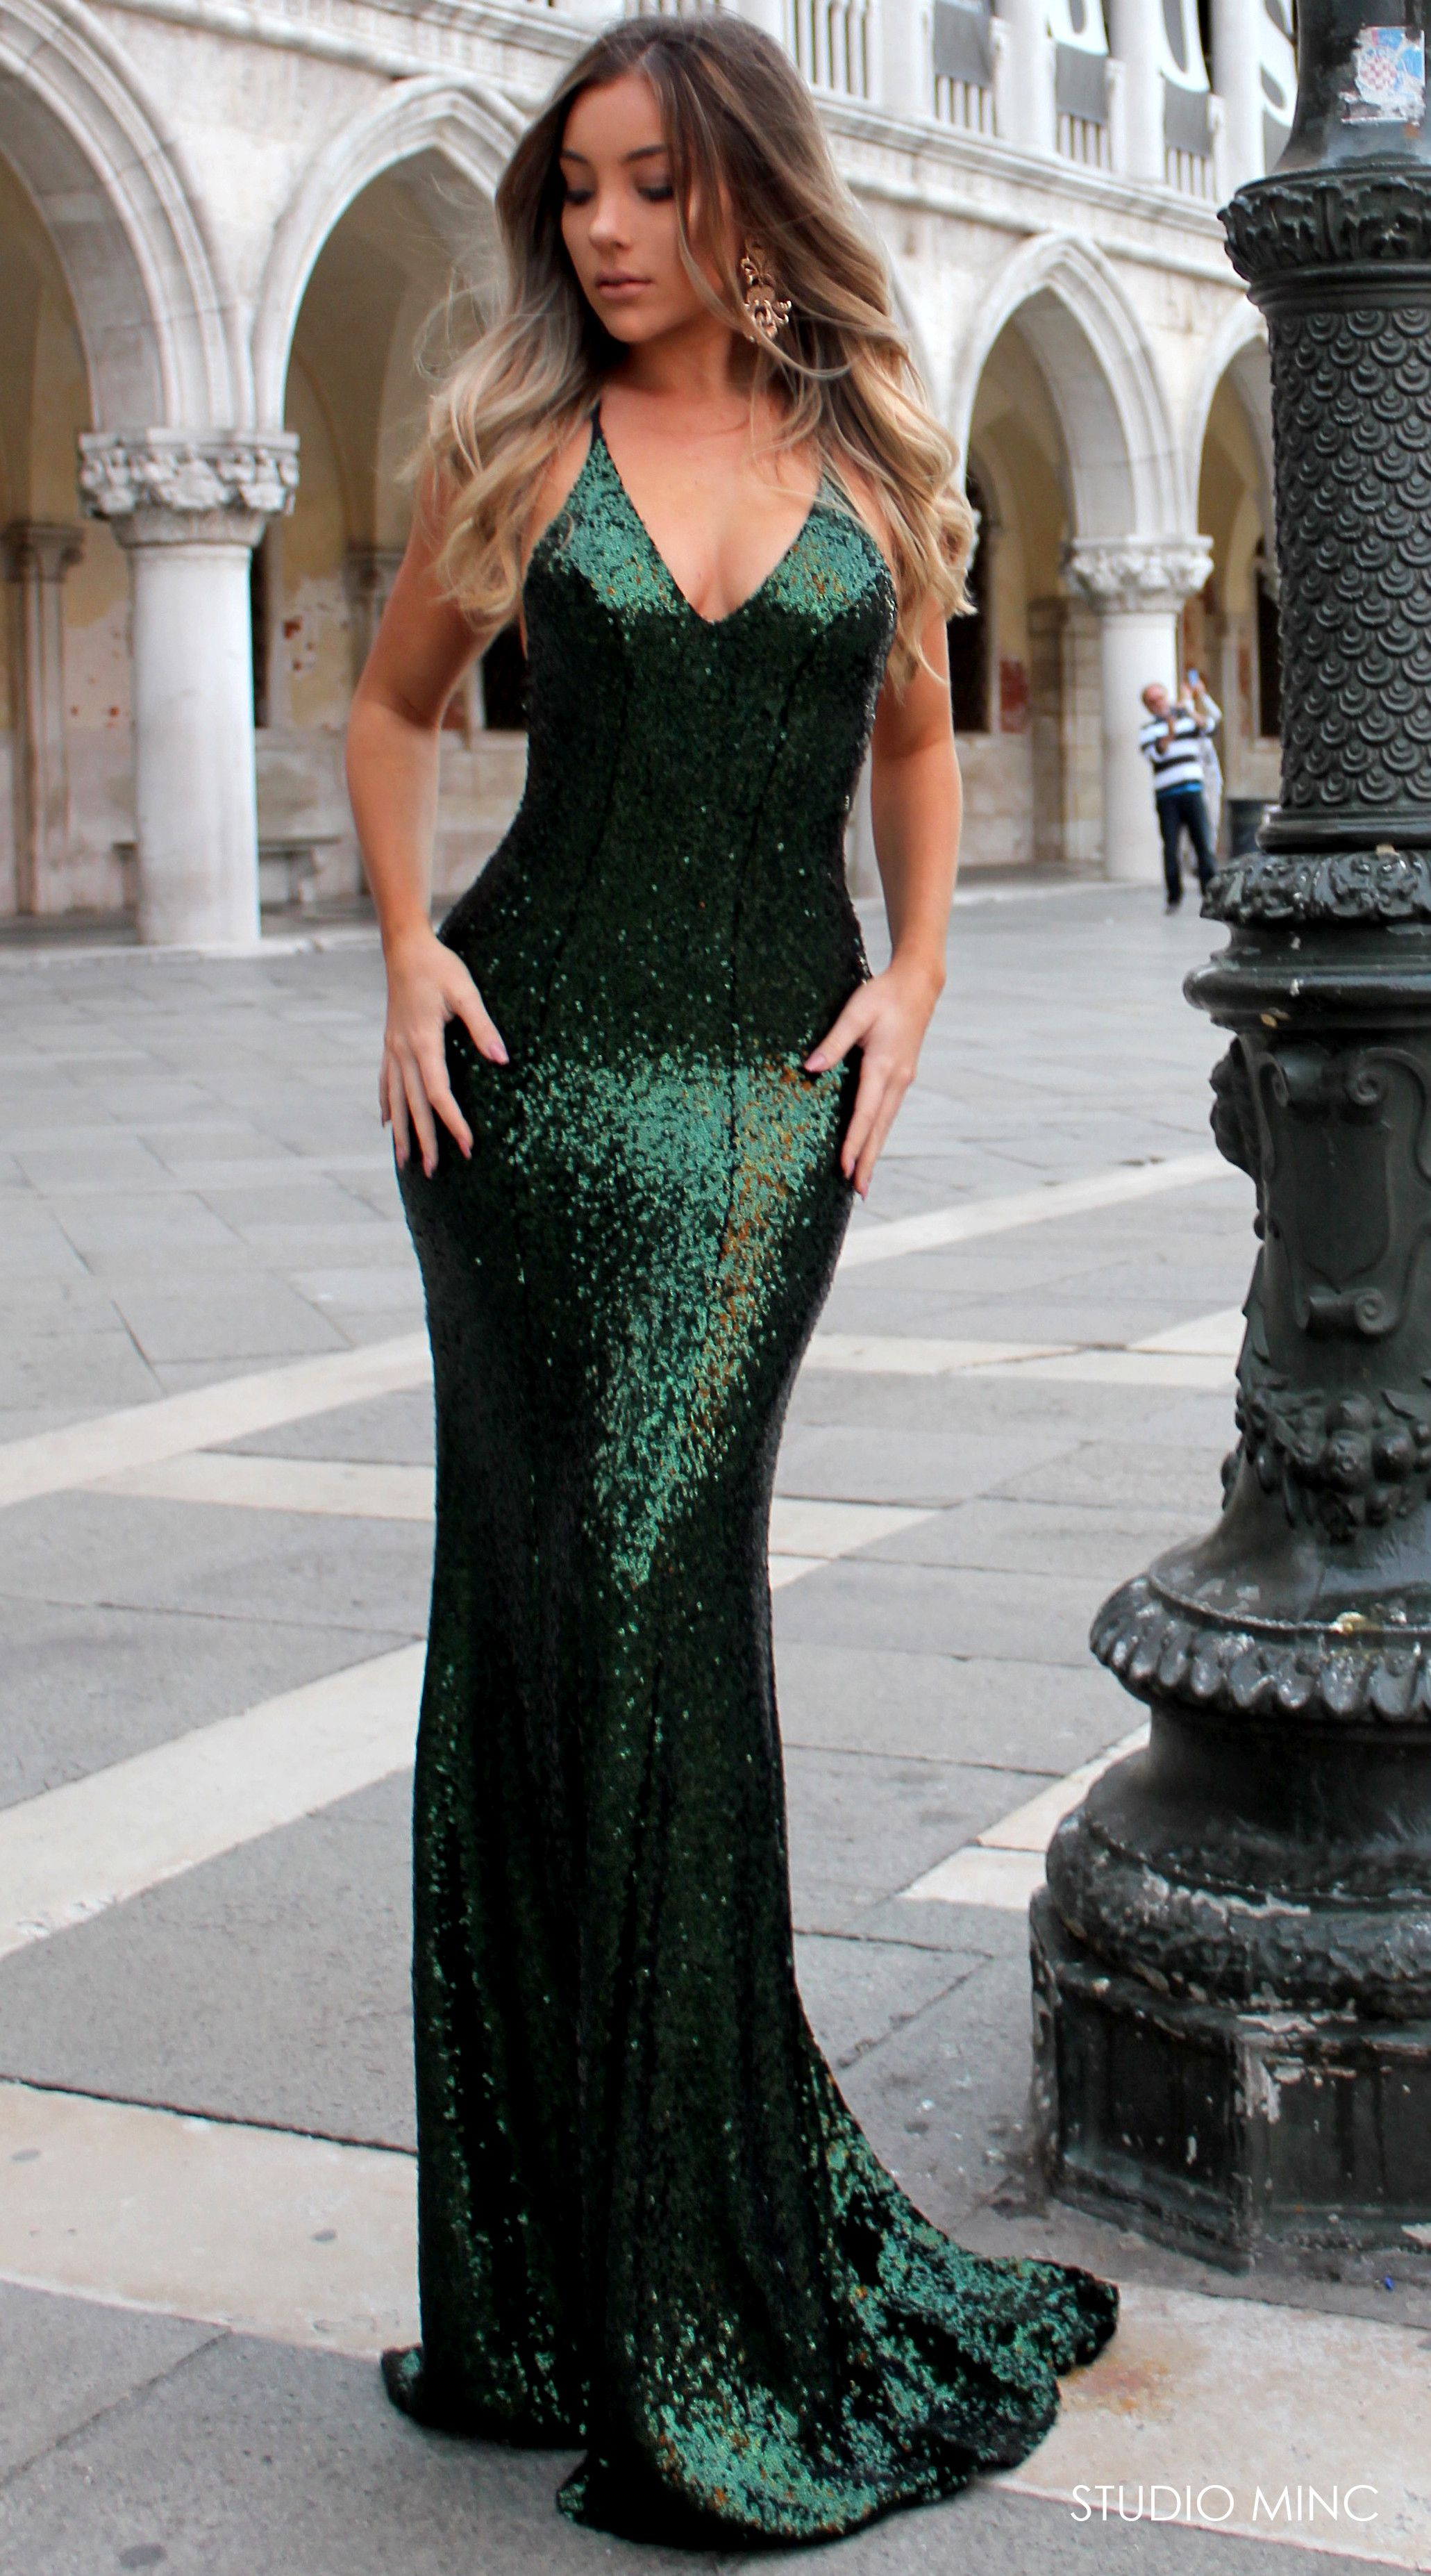 EMERALD GODDESS BACKLESS FORMAL DRESS BY STUDIO MINC  GREEN  EMERALD  SEQUIN   PROM  FORMAL  DRESS 132fe58853d9